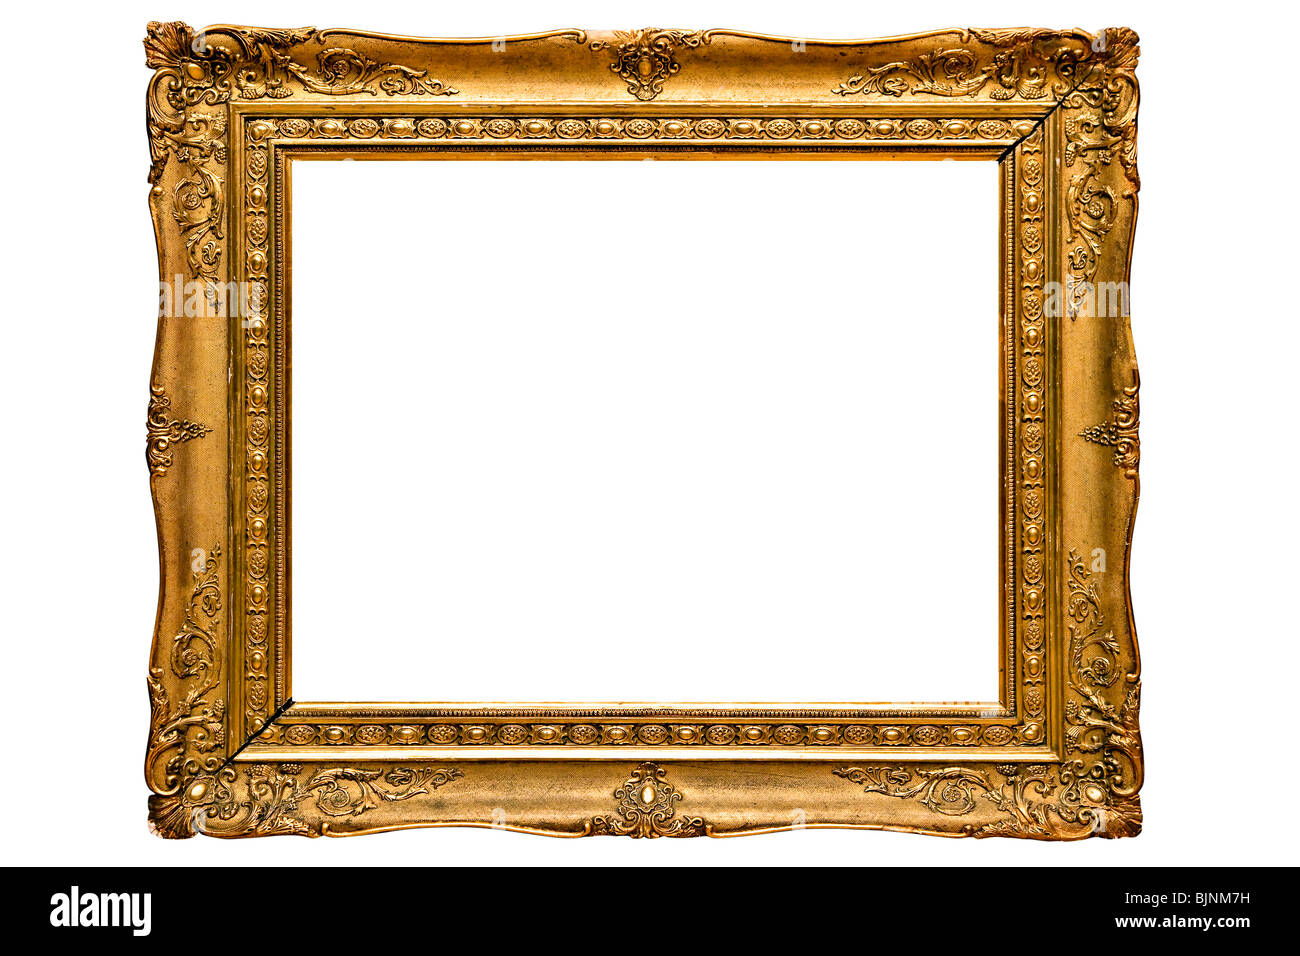 Gilded picture frame - Stock Image